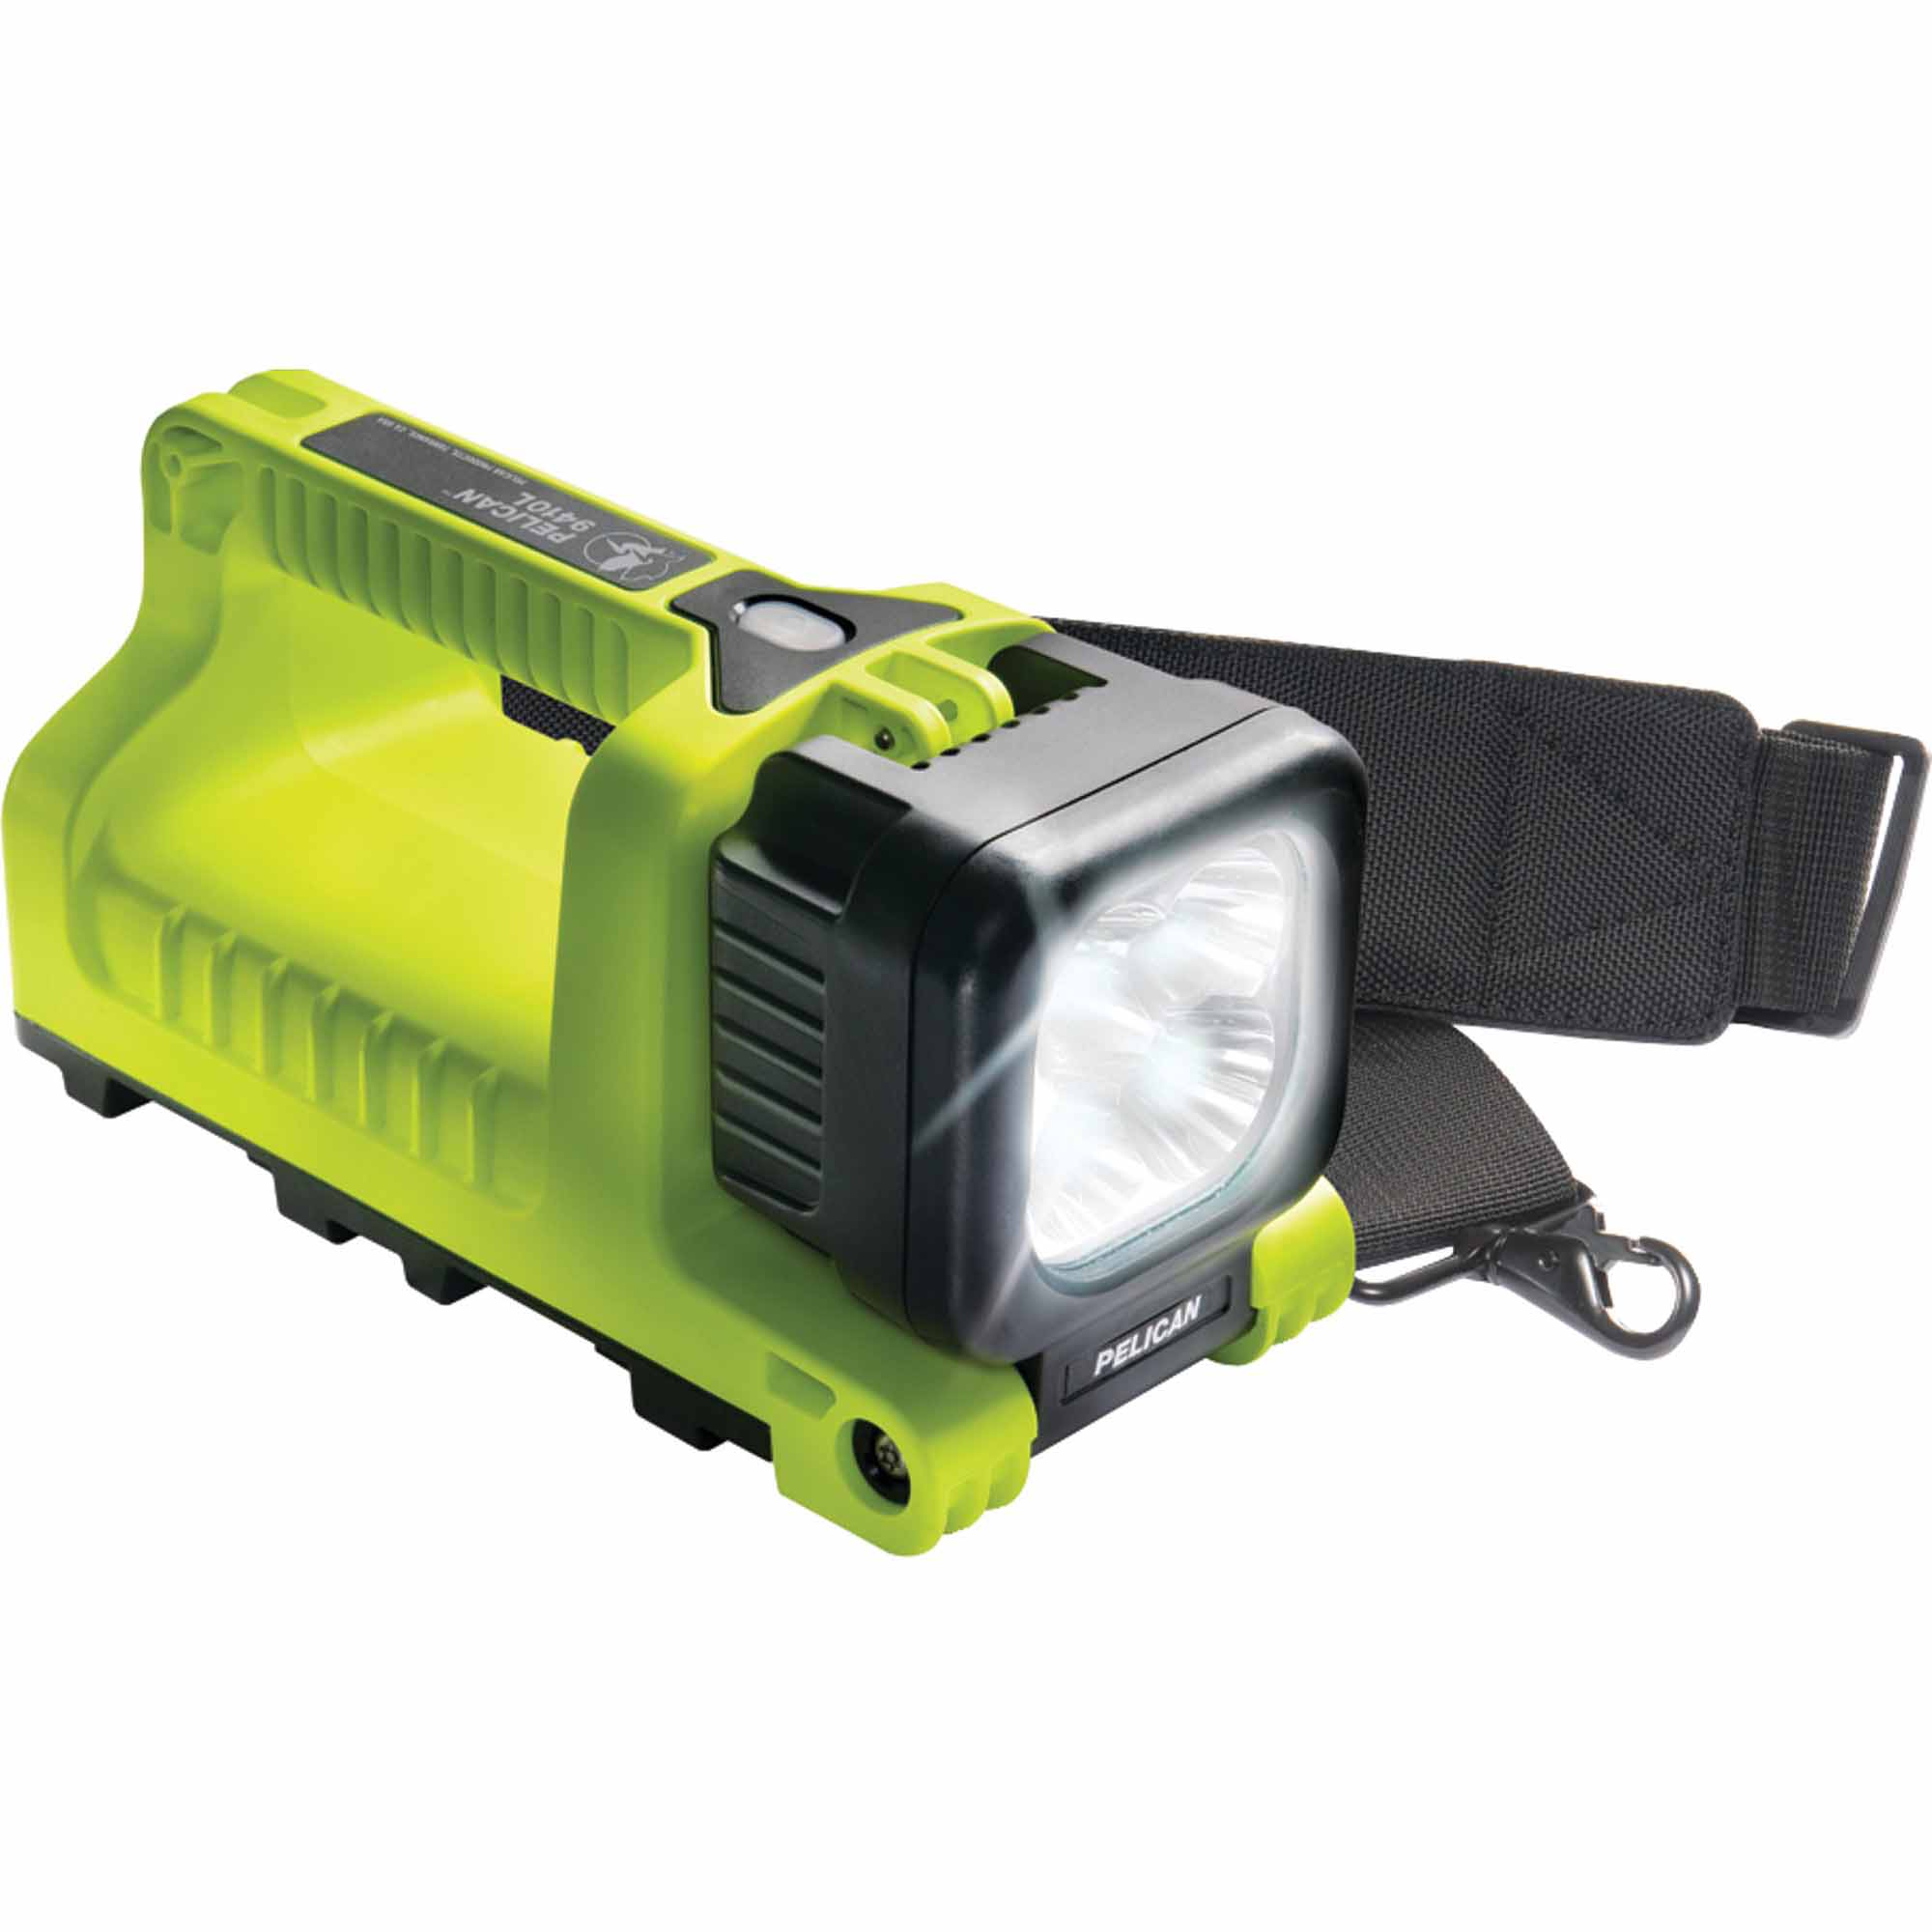 Pelican 9410-021-245 741-Lumen 9410l Rechargeable High-Performance LED Lantern, Bright Yellow